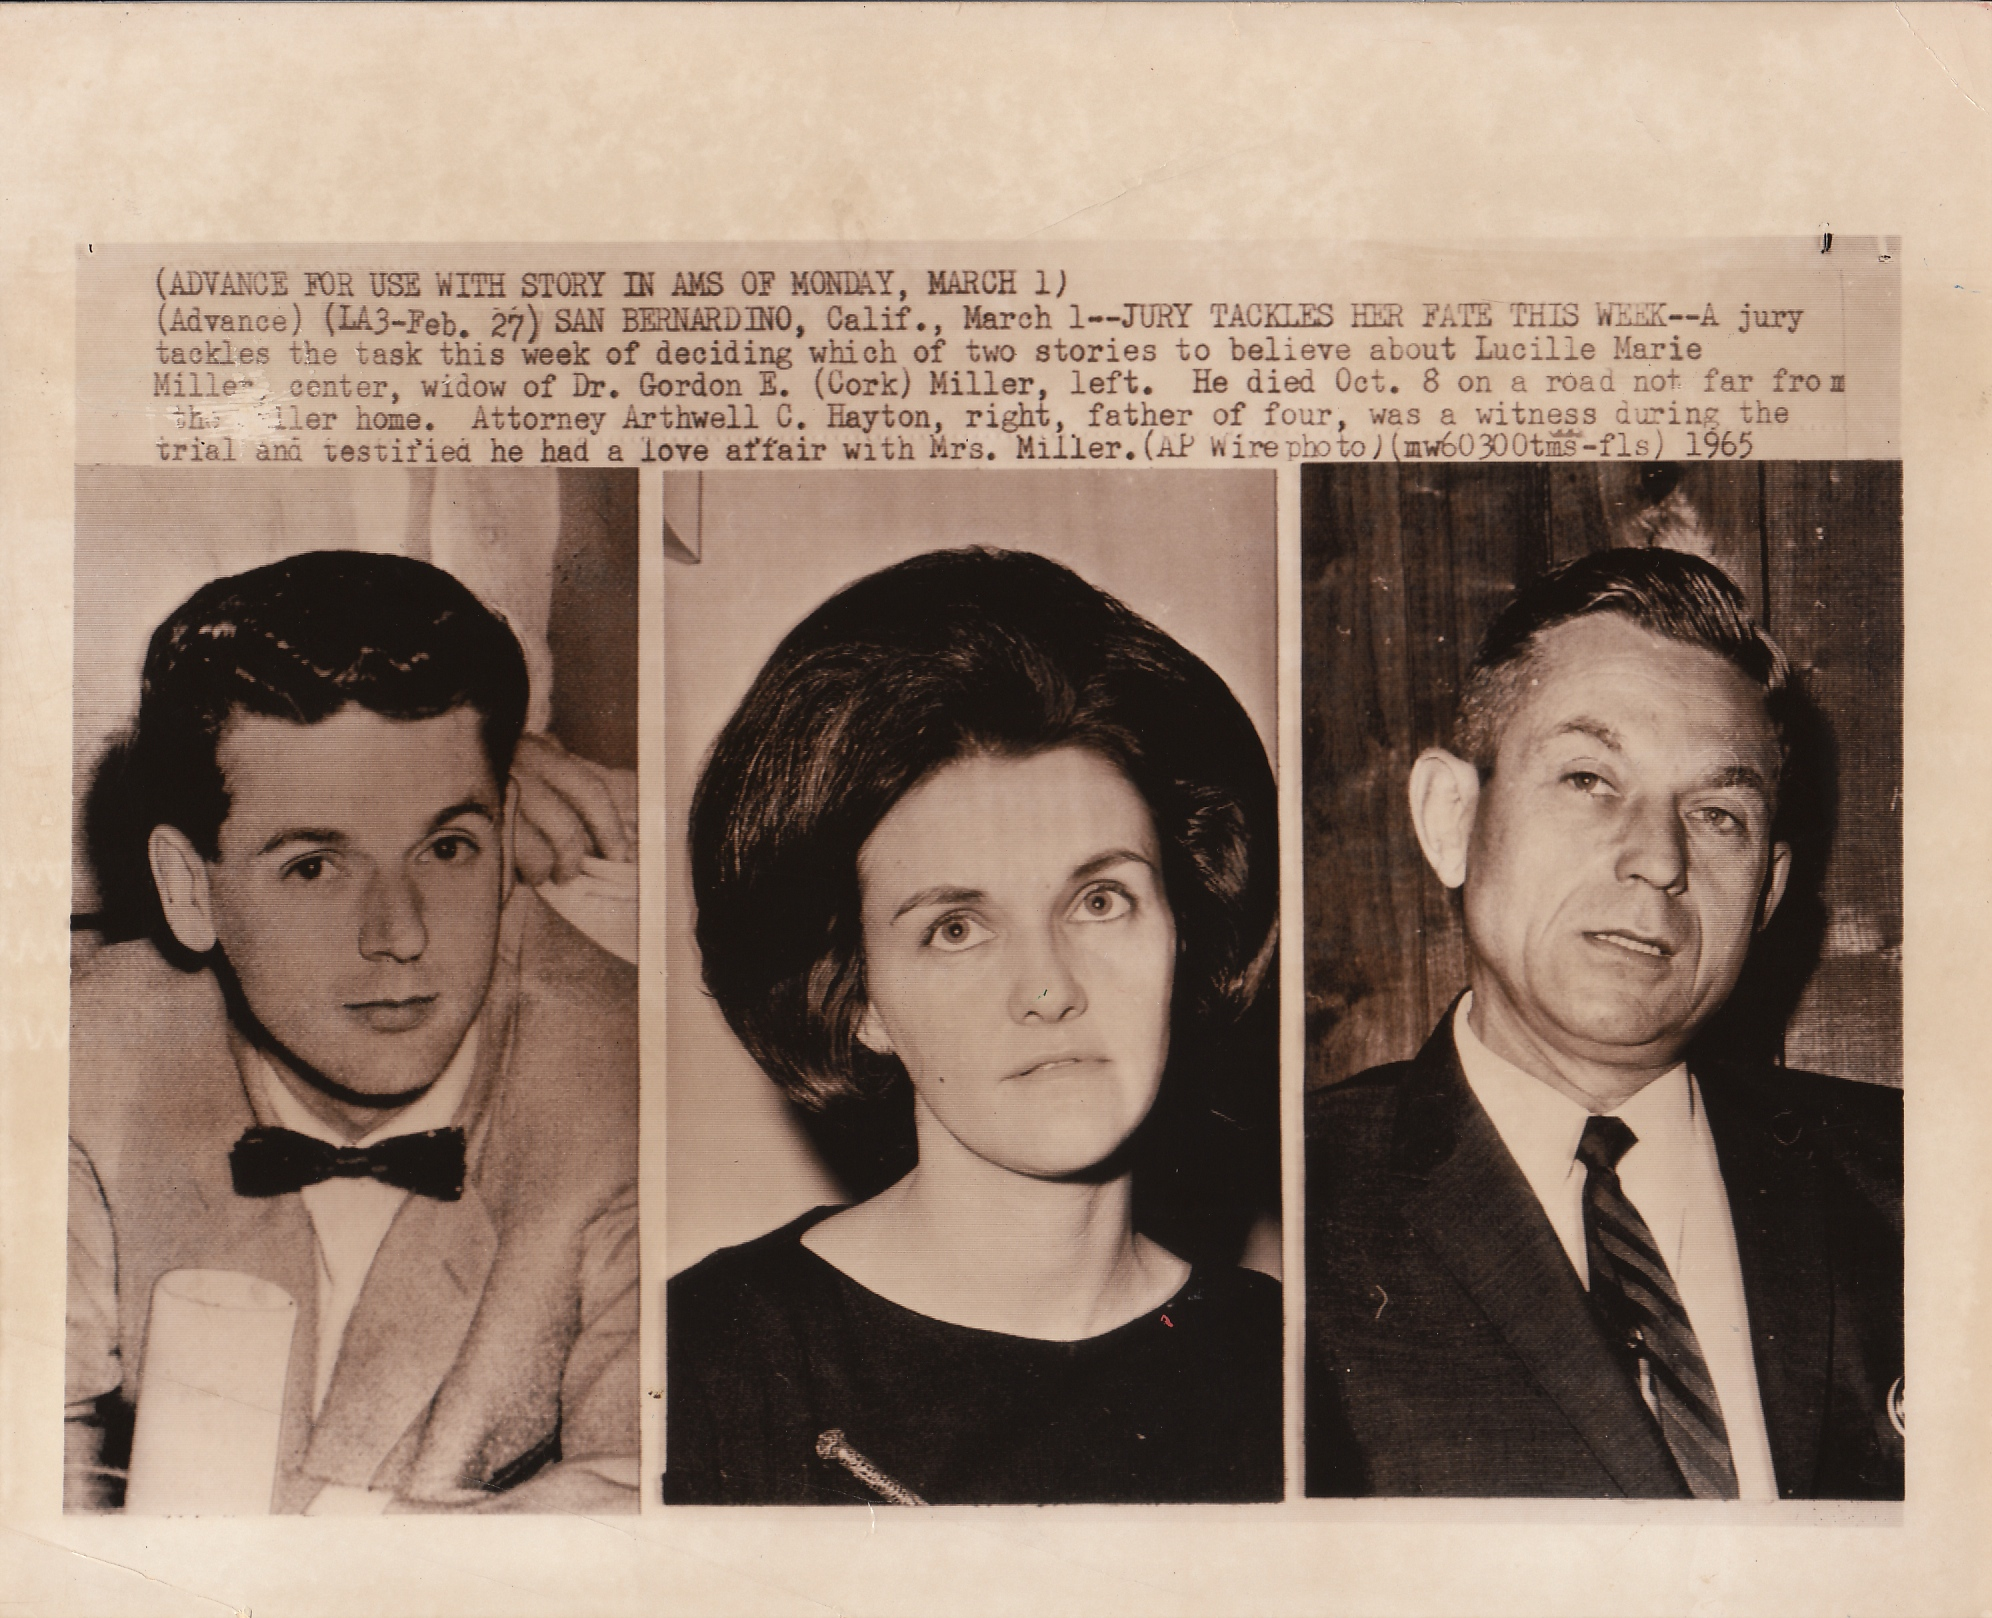 "1965: Dr. Gordan (Cork) Miller, Lucille Marie Miller, and Lucille Miller's lover, attorney Arthwell C. Hayton.  Empire Makers_5, 2015, found   photograph  ,  8 x 10,""   all appropriation rights reserved ."